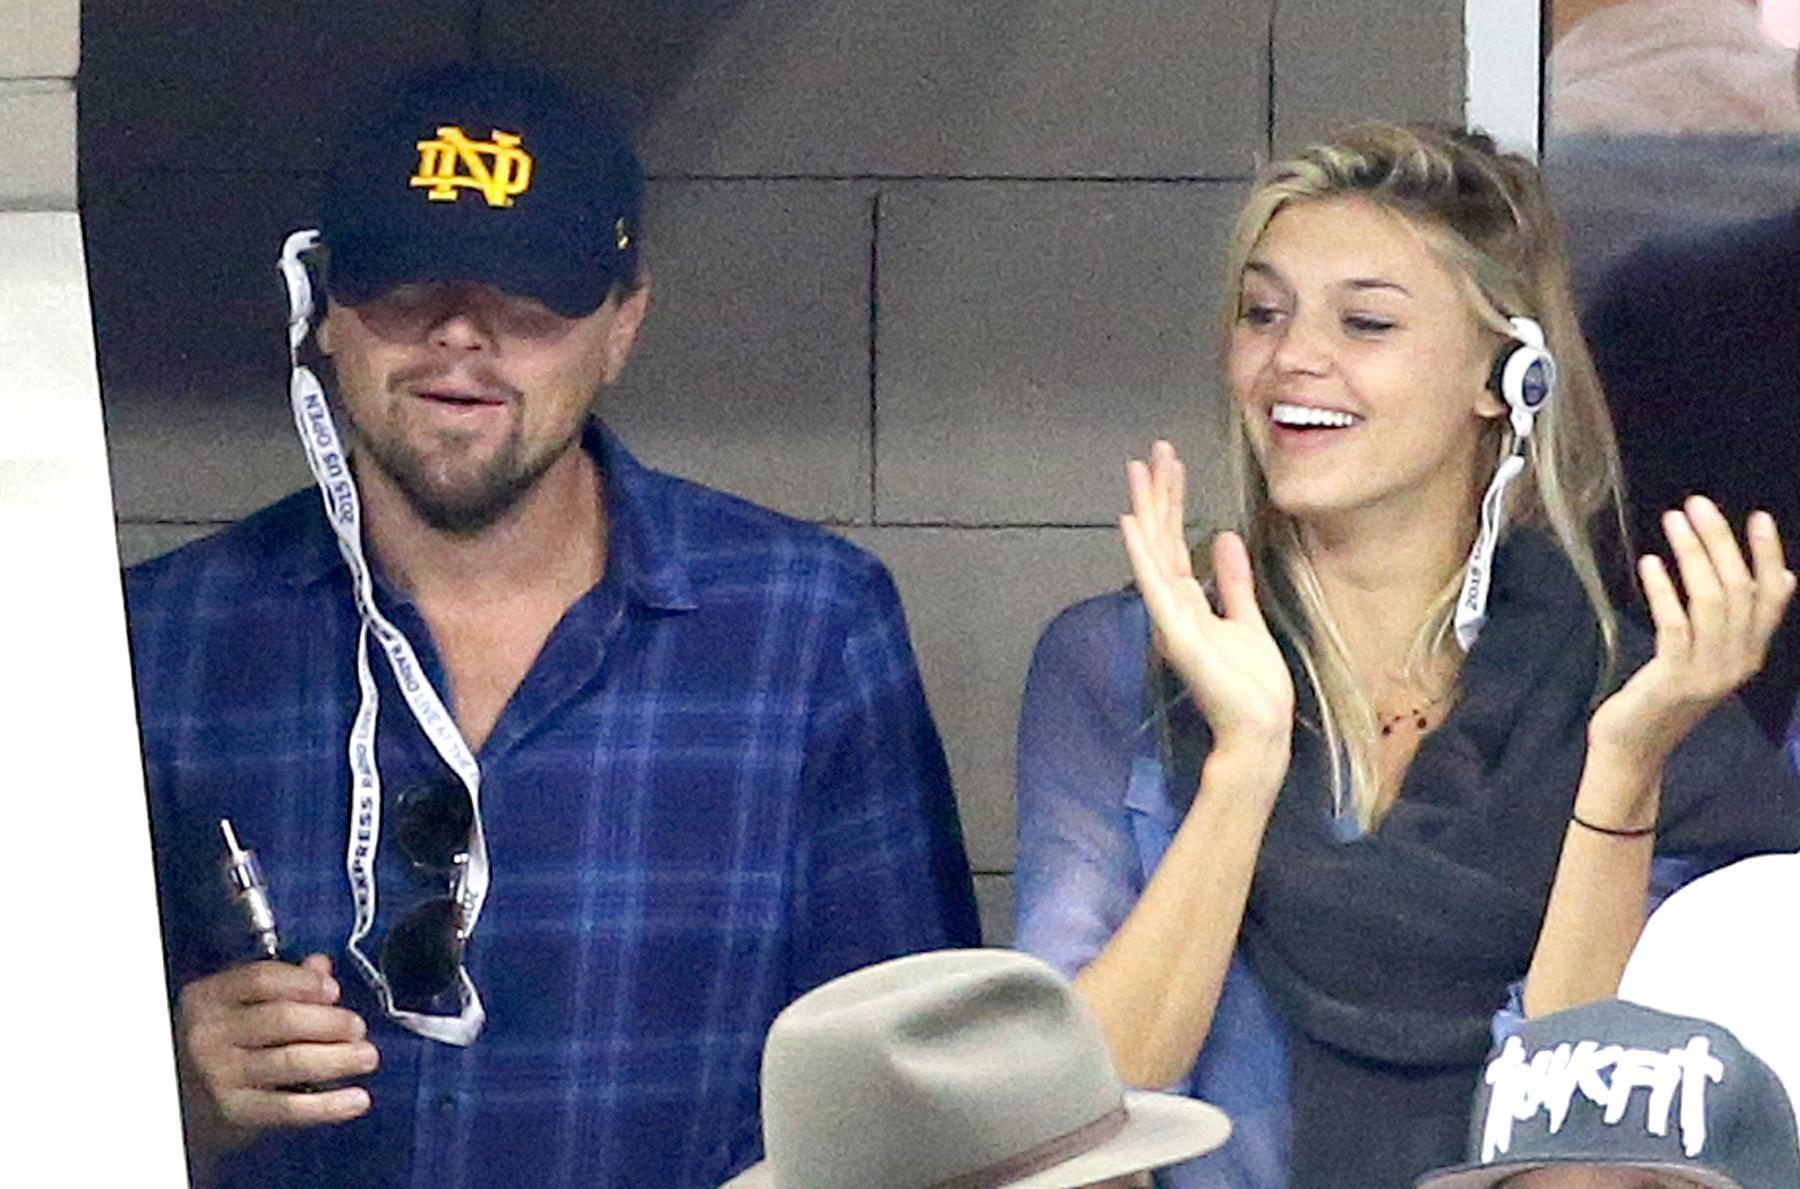 Leonardo DiCaprio and Kelly Rohrbach Split Erin Heatherton And Leonardo Dicaprio Split